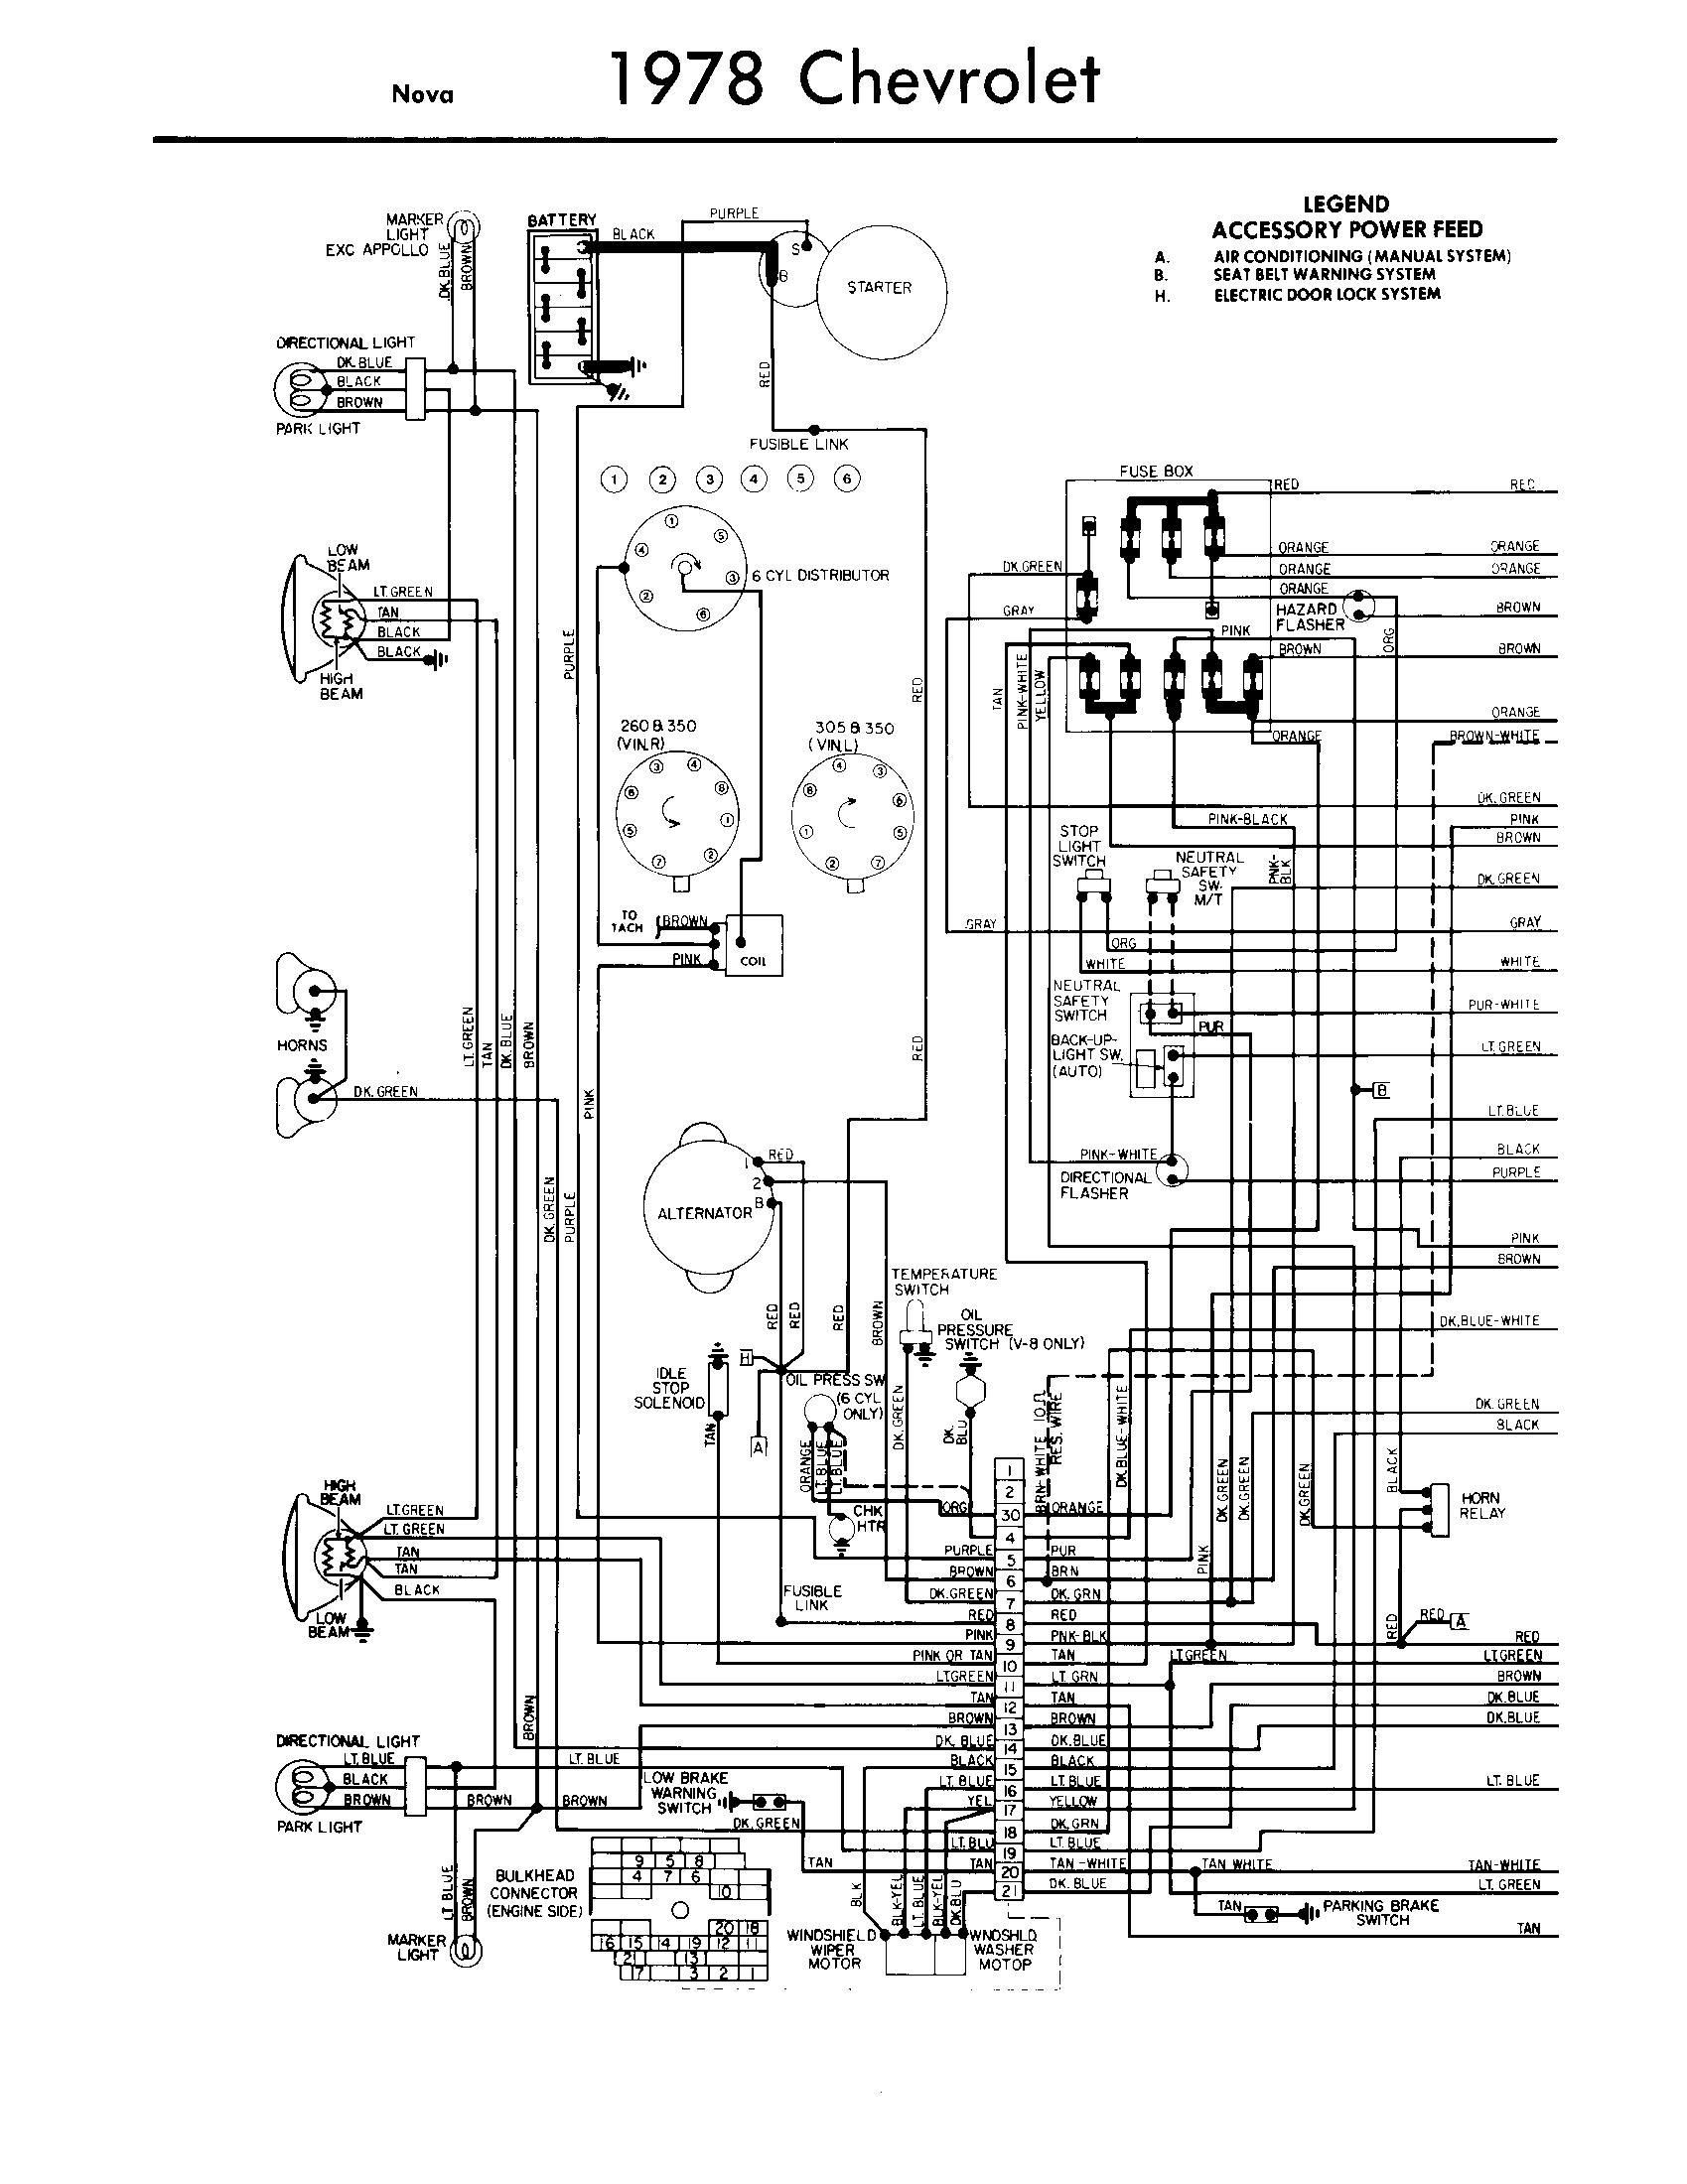 1980 Chevy Heater Wiring | Wiring Diagram on